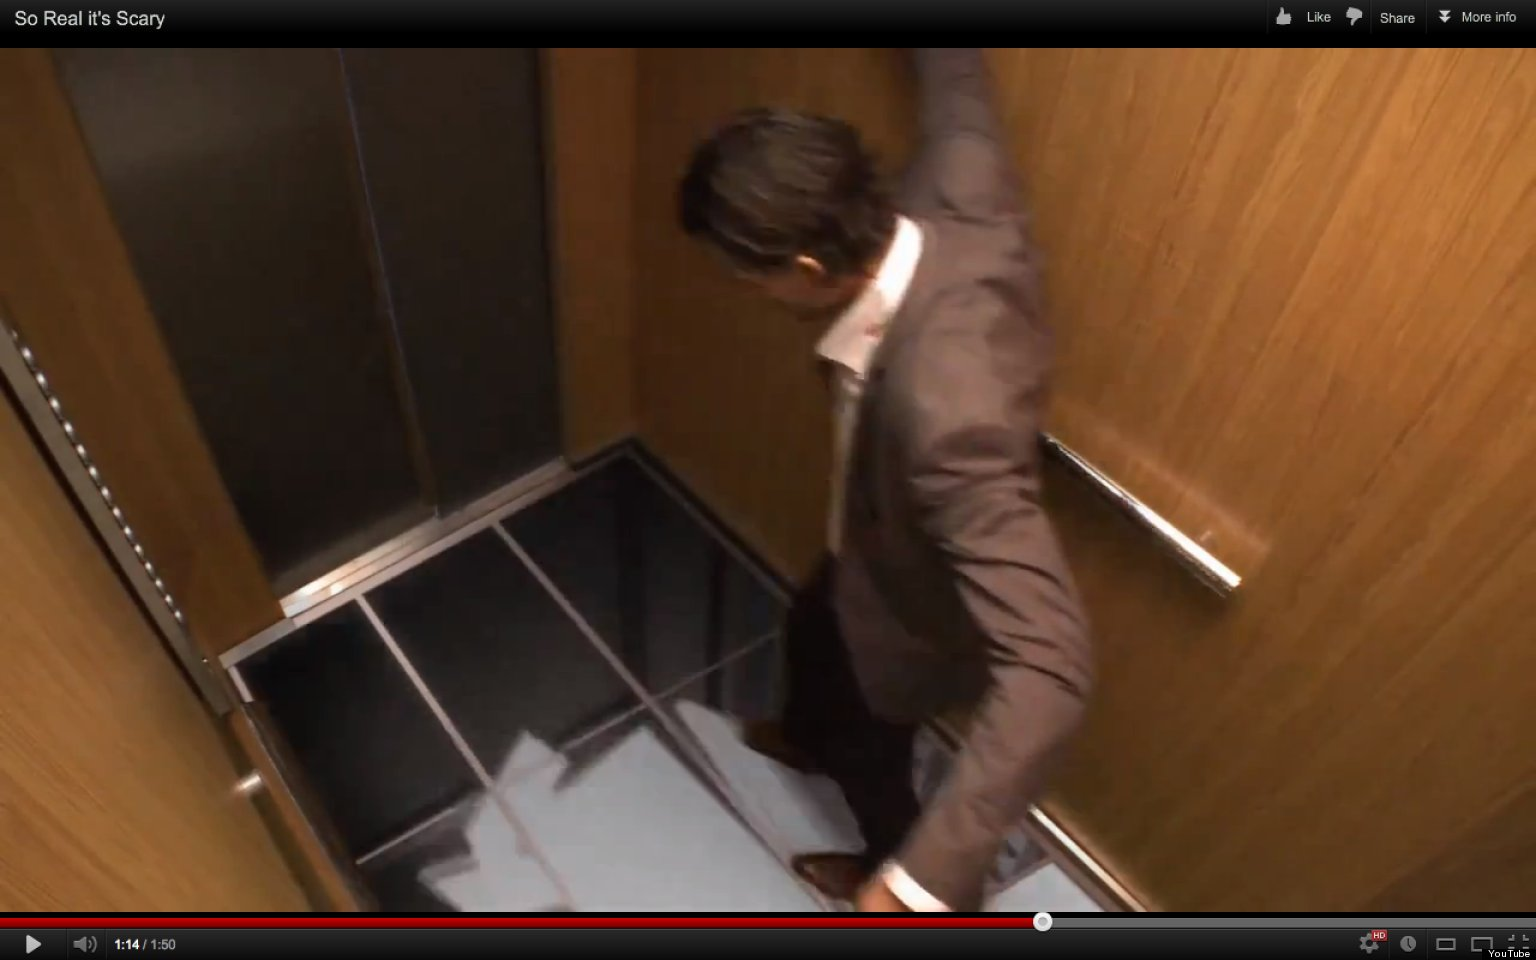 Lg Pranks Elevator Riders Makes It Seem They Re About To